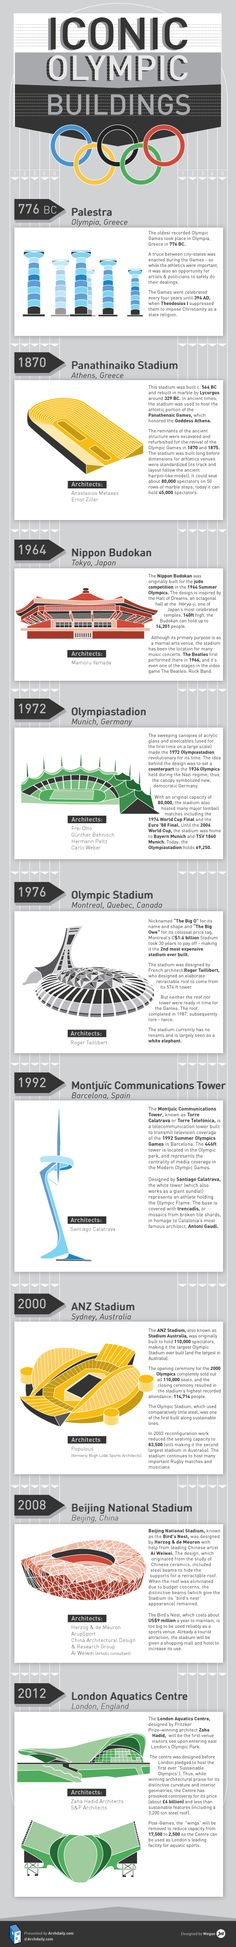 Fresh on IGM > Famous Olympic Buildings: These constructions are some of the most elaborated, inspired and costly setups built to host olympic events around history since 776 BC.  > http://infographicsmania.com/famous-olympic-buildings/